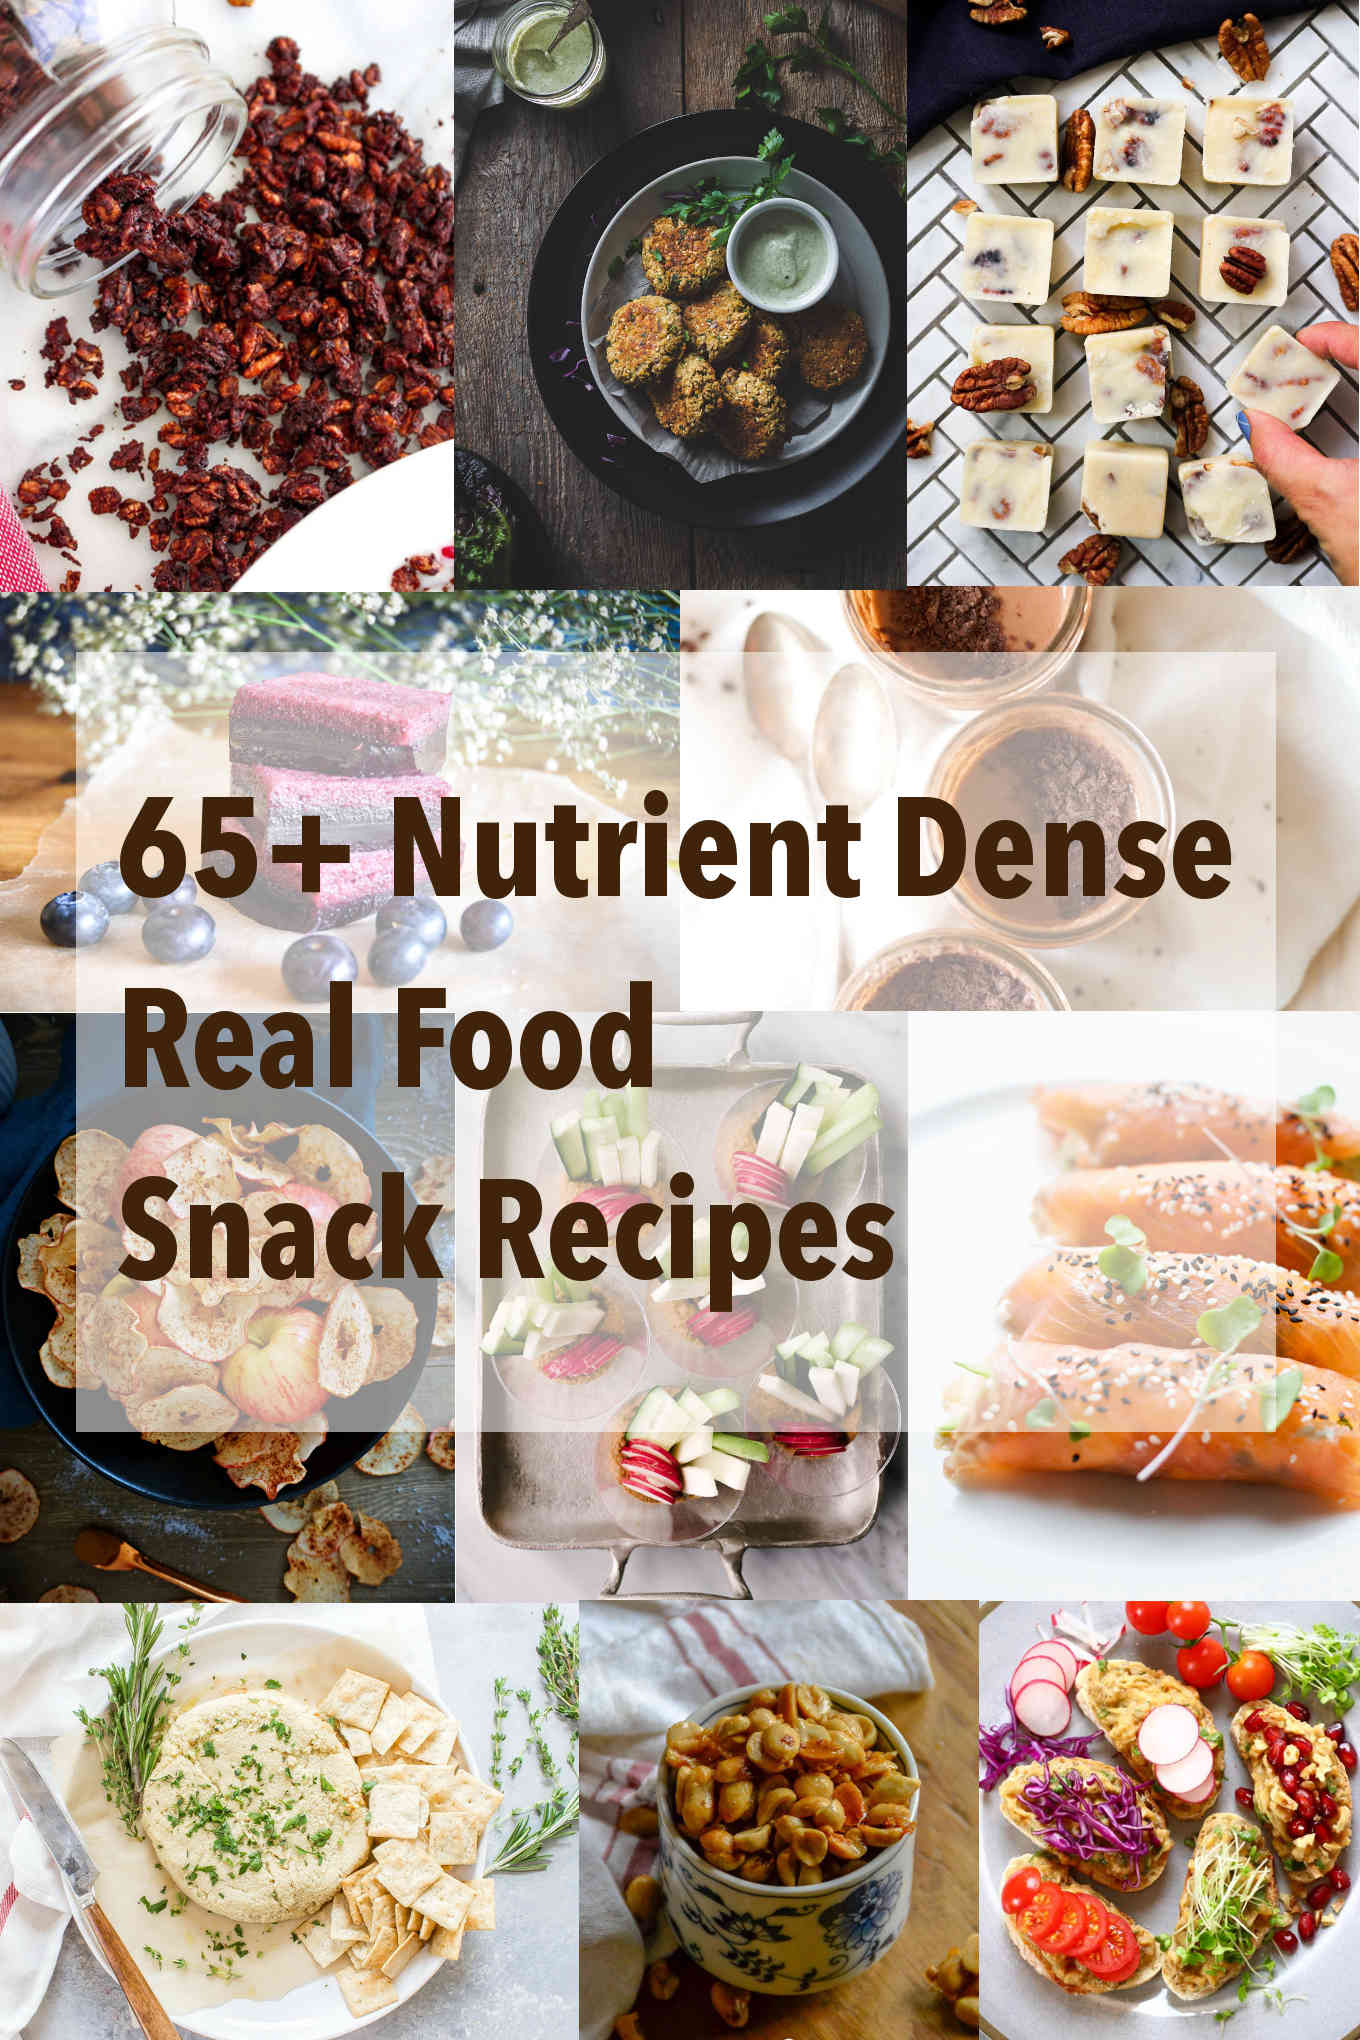 photo collage for 65+ nutrient dense real food snack recipes.